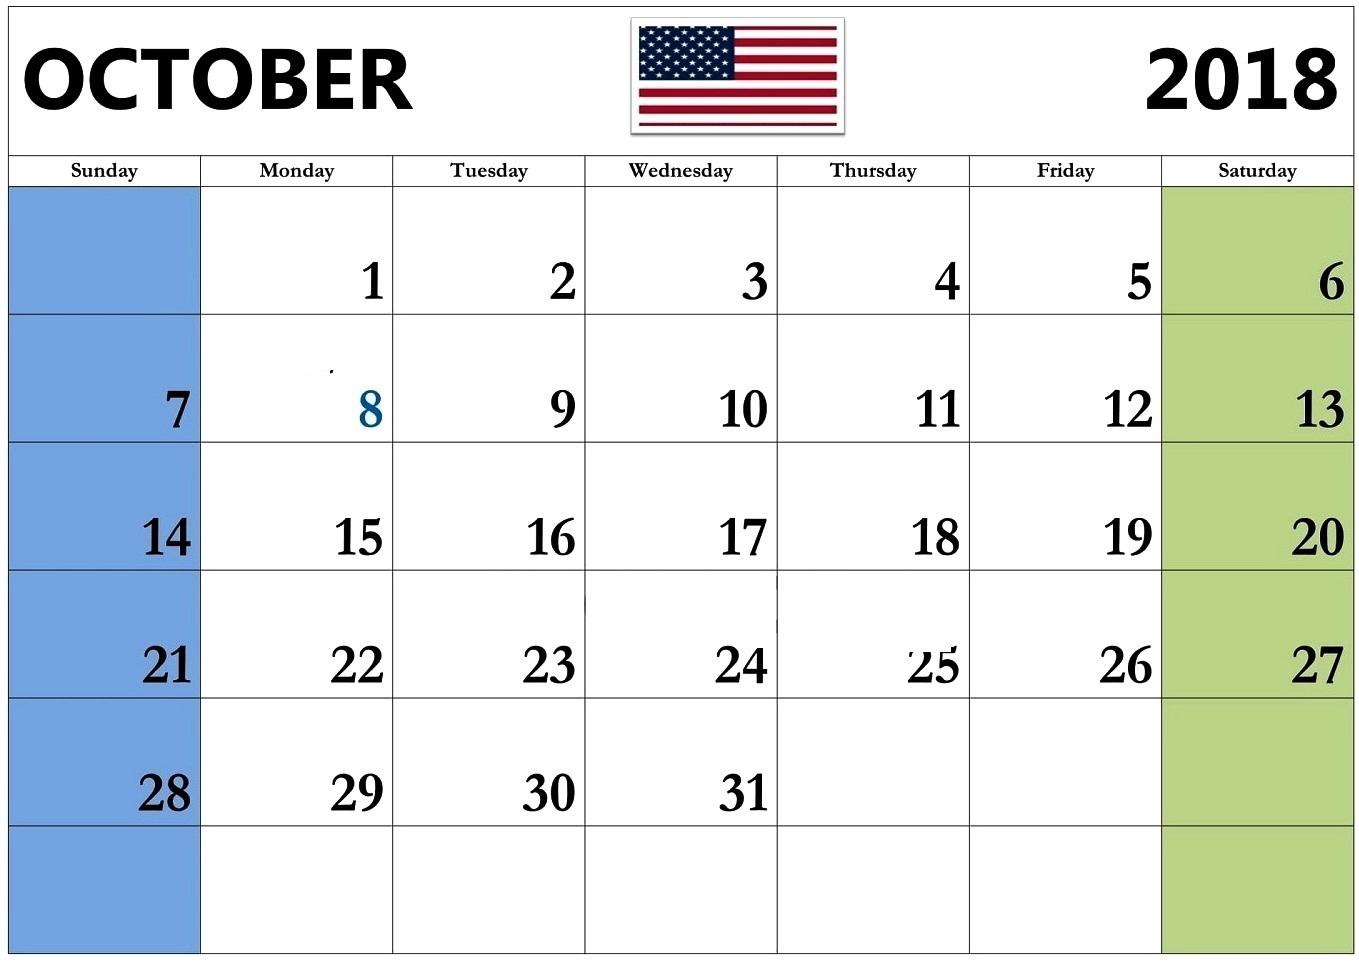 october 2018 calendar with holidays usa task management template October 2018 Calendar Holidays USA erdferdf